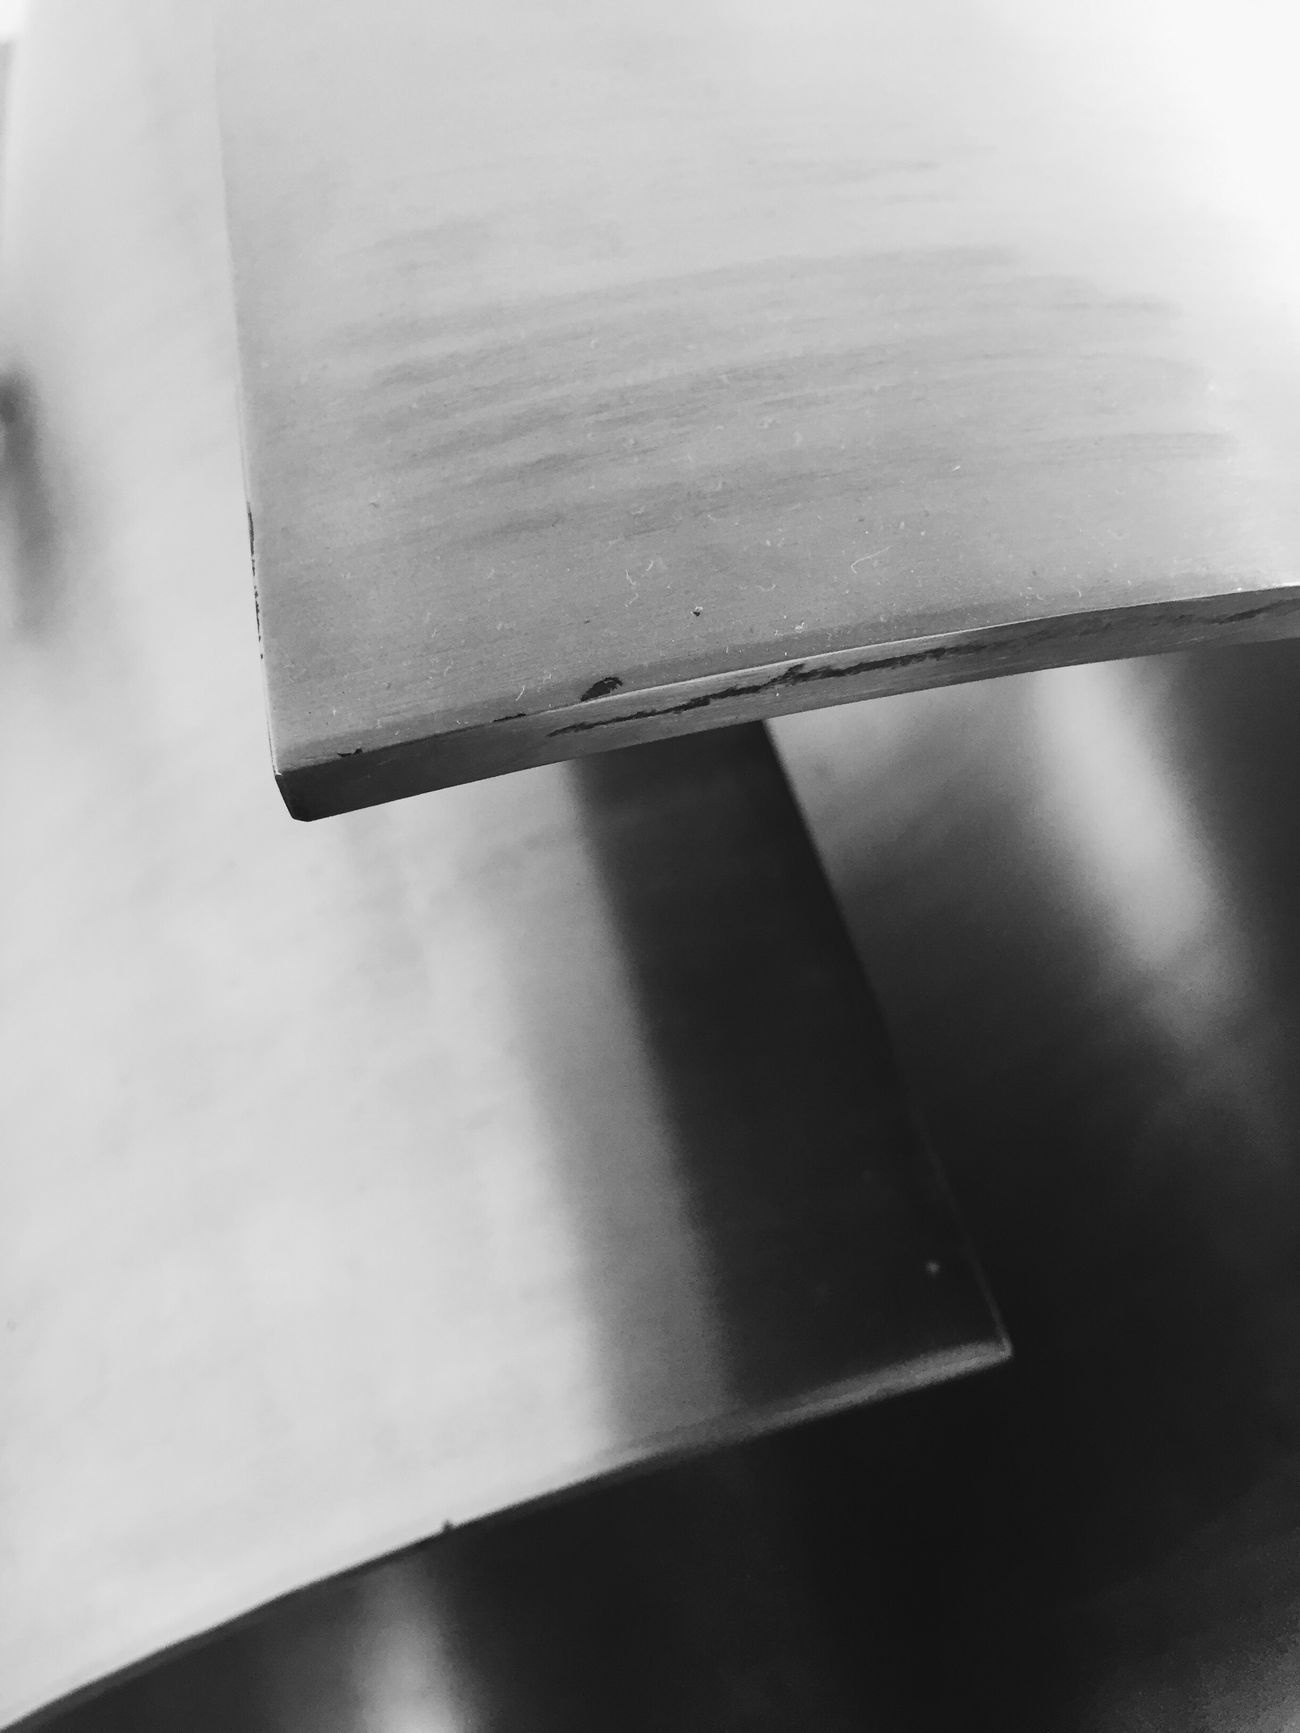 Steel Industrial Industry Blackandwhite Black And White Black & White Monochrome Abstract Maximum Closeness